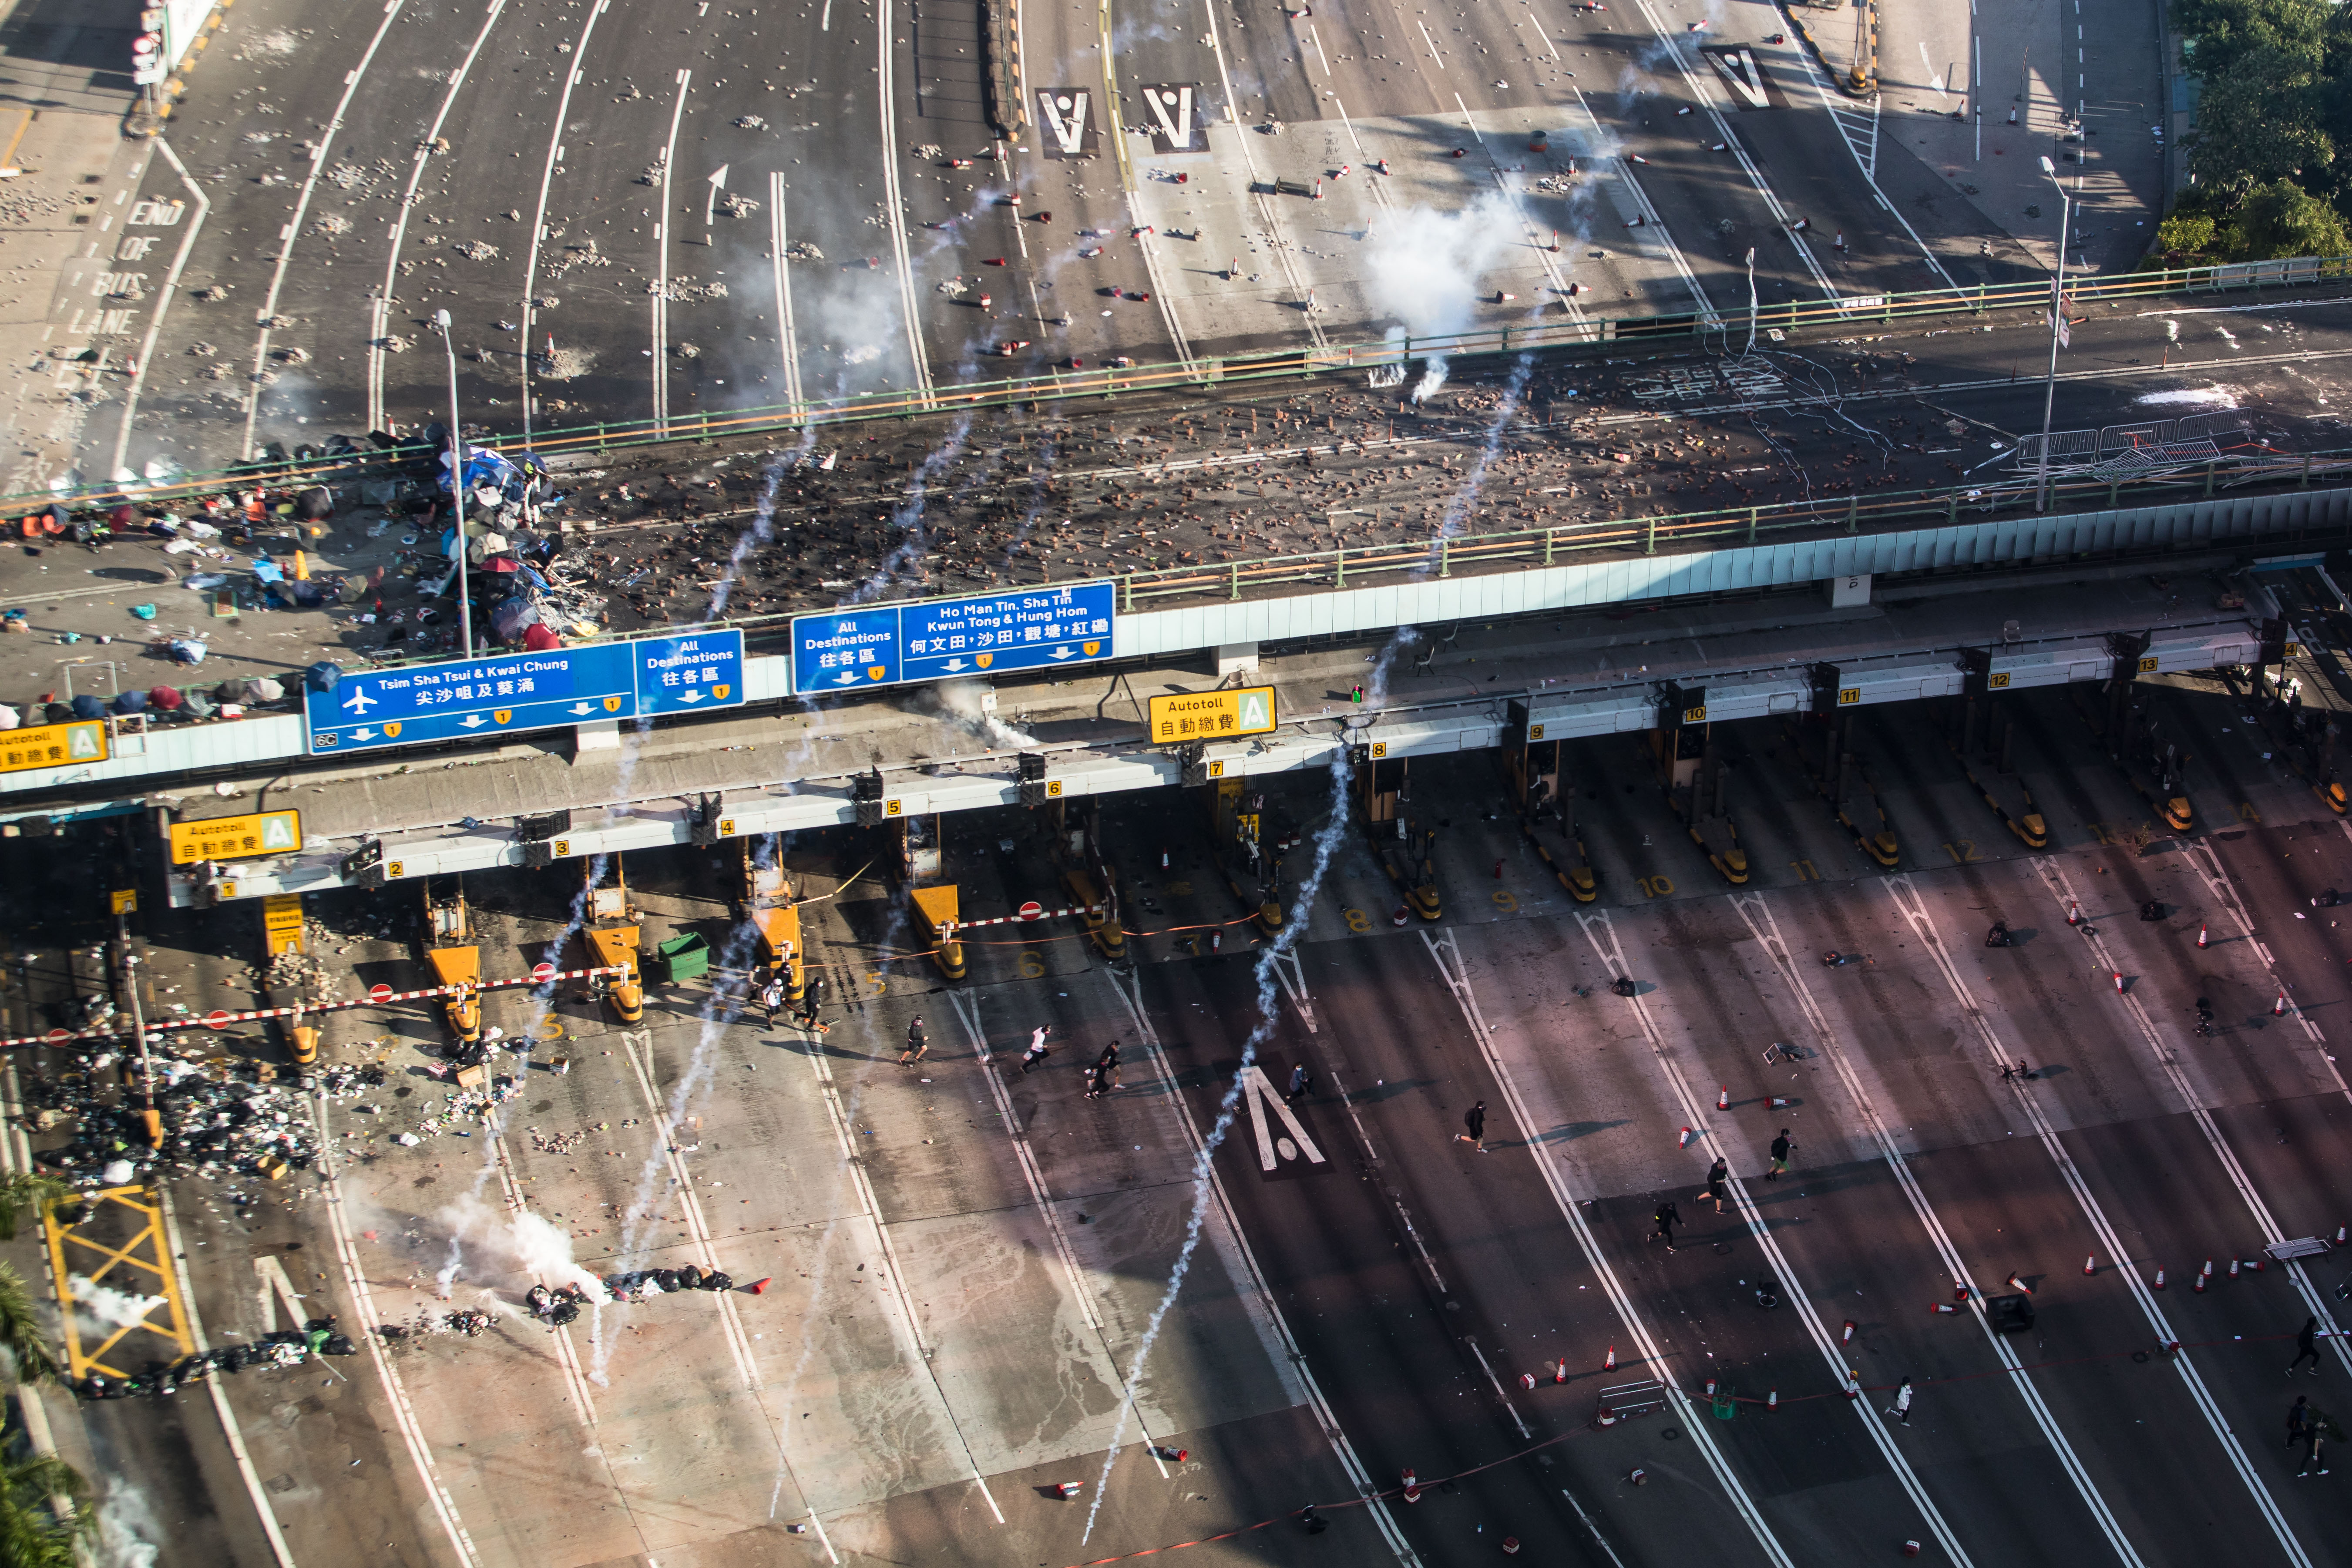 Police fire tear gas as protesters run on a road leading to the Cross Harbour Tunnel while trying to leave Hong Kong Polytechnic University in Hung Hom district of Hong Kong on November 18.